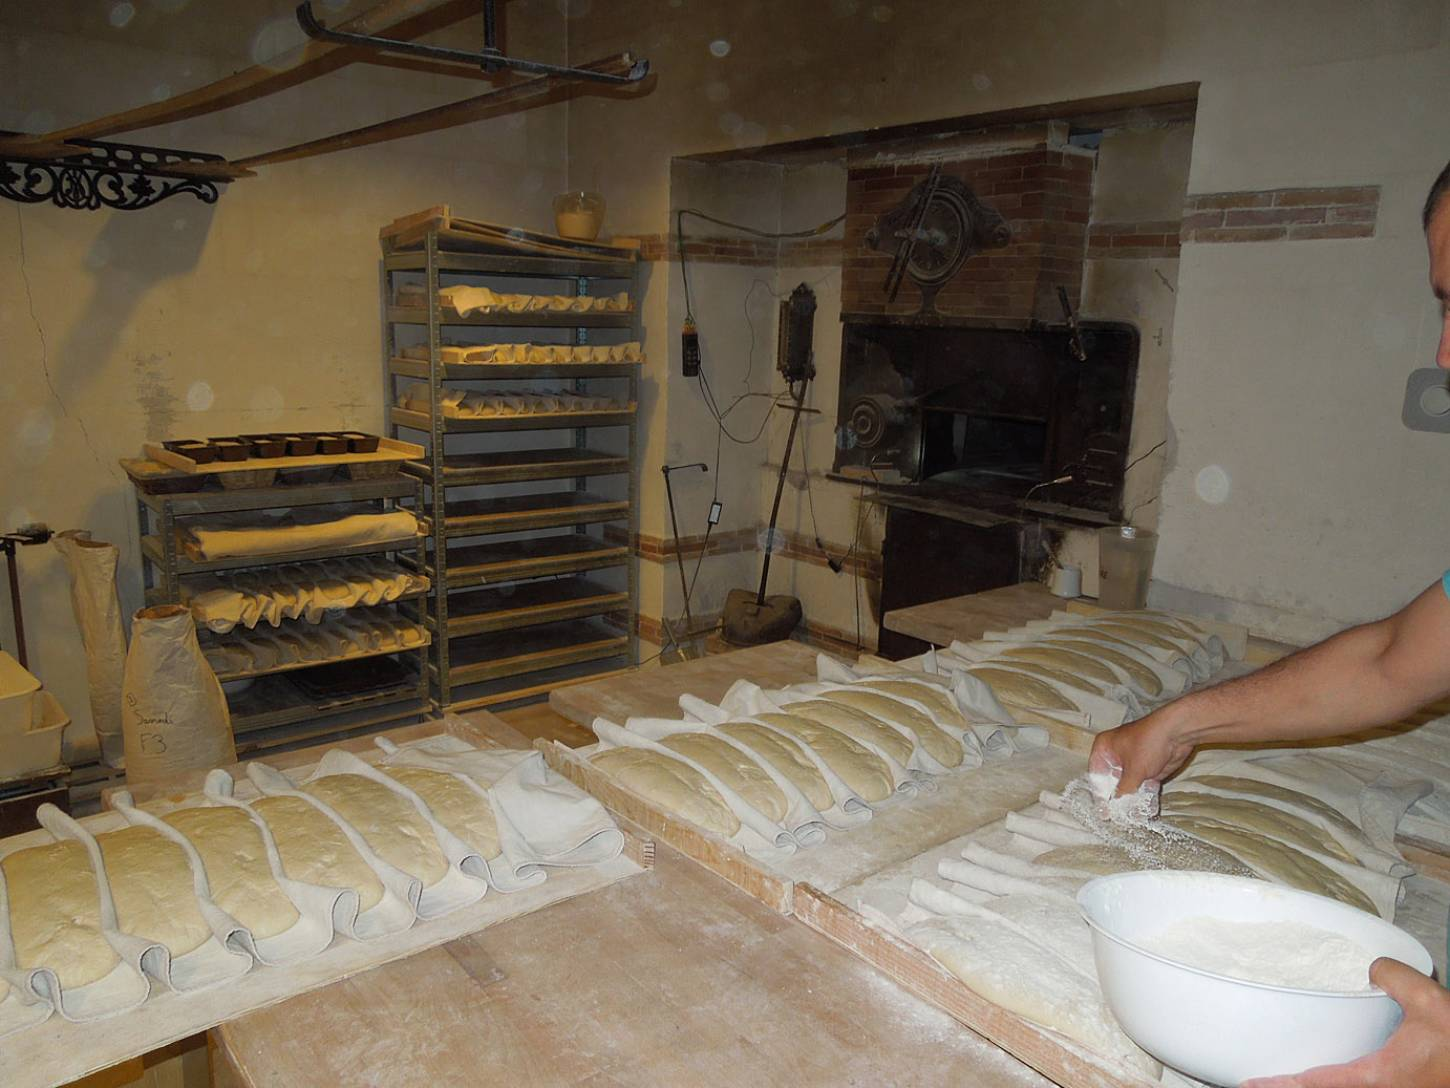 visit to the boulangers paysan of <a href='https://www.facebook.com/Ferme.Campagnolle' target=_blank>Ferme Campognole</a> - bread ready for baking - 8:21am&nbsp;29<sup>th</sup>&nbsp;May.&nbsp;'15